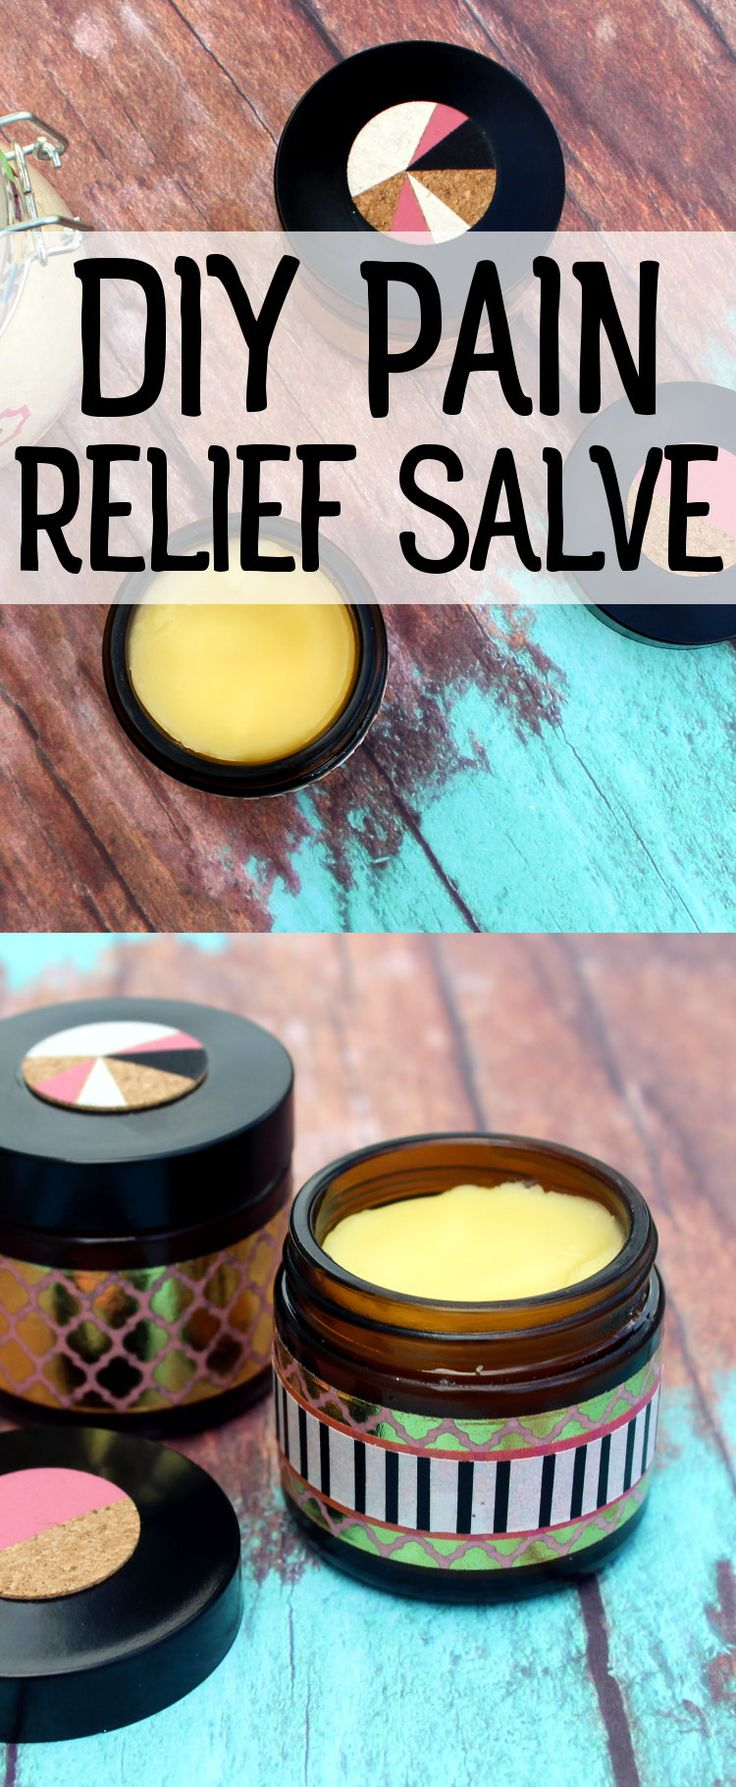 If you suffer from pain due to sore muscles or arthritis this arnica pain relief salve recipe is the perfect natural remedy for muscle pain & inflammation!